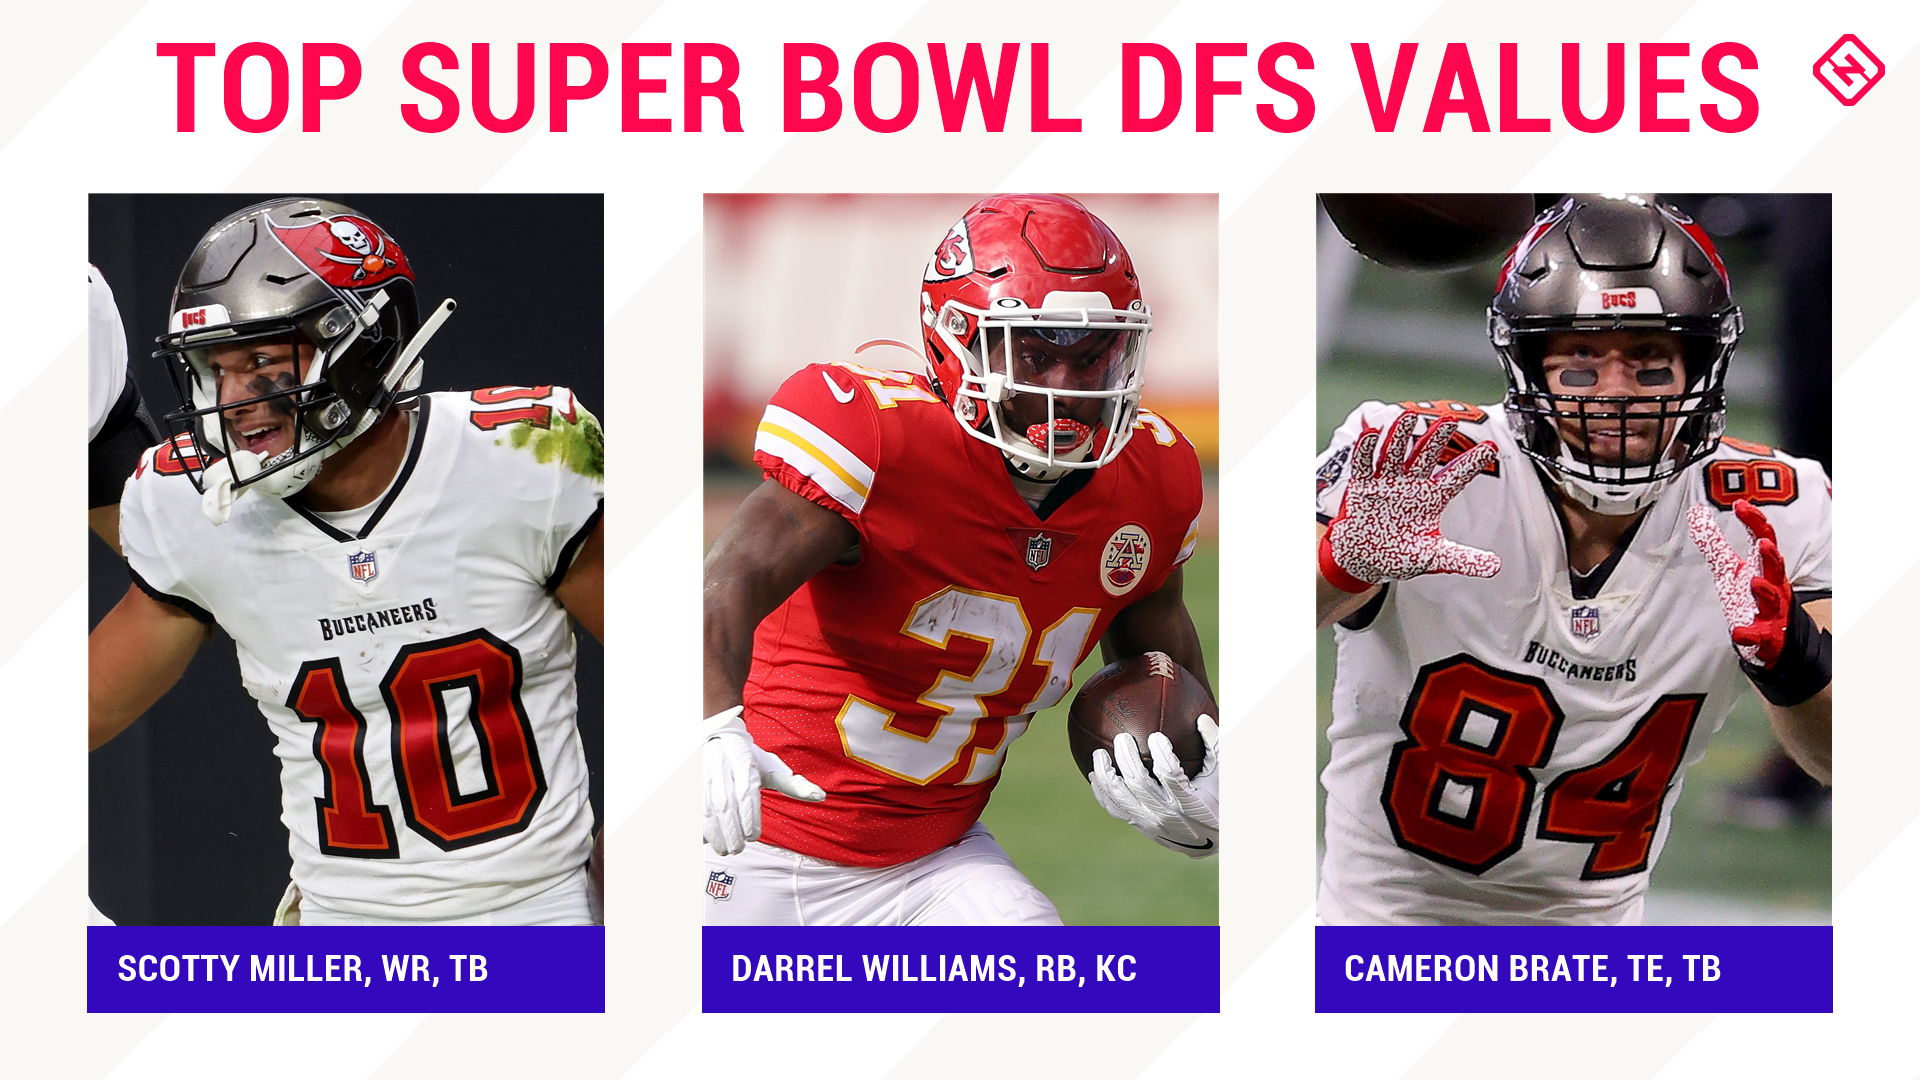 Super Bowl Nfl Dfs Picks Best Picks Sleepers For Draftkings Fanduel Single Game Daily Fantasy Football Lineups Sporting News